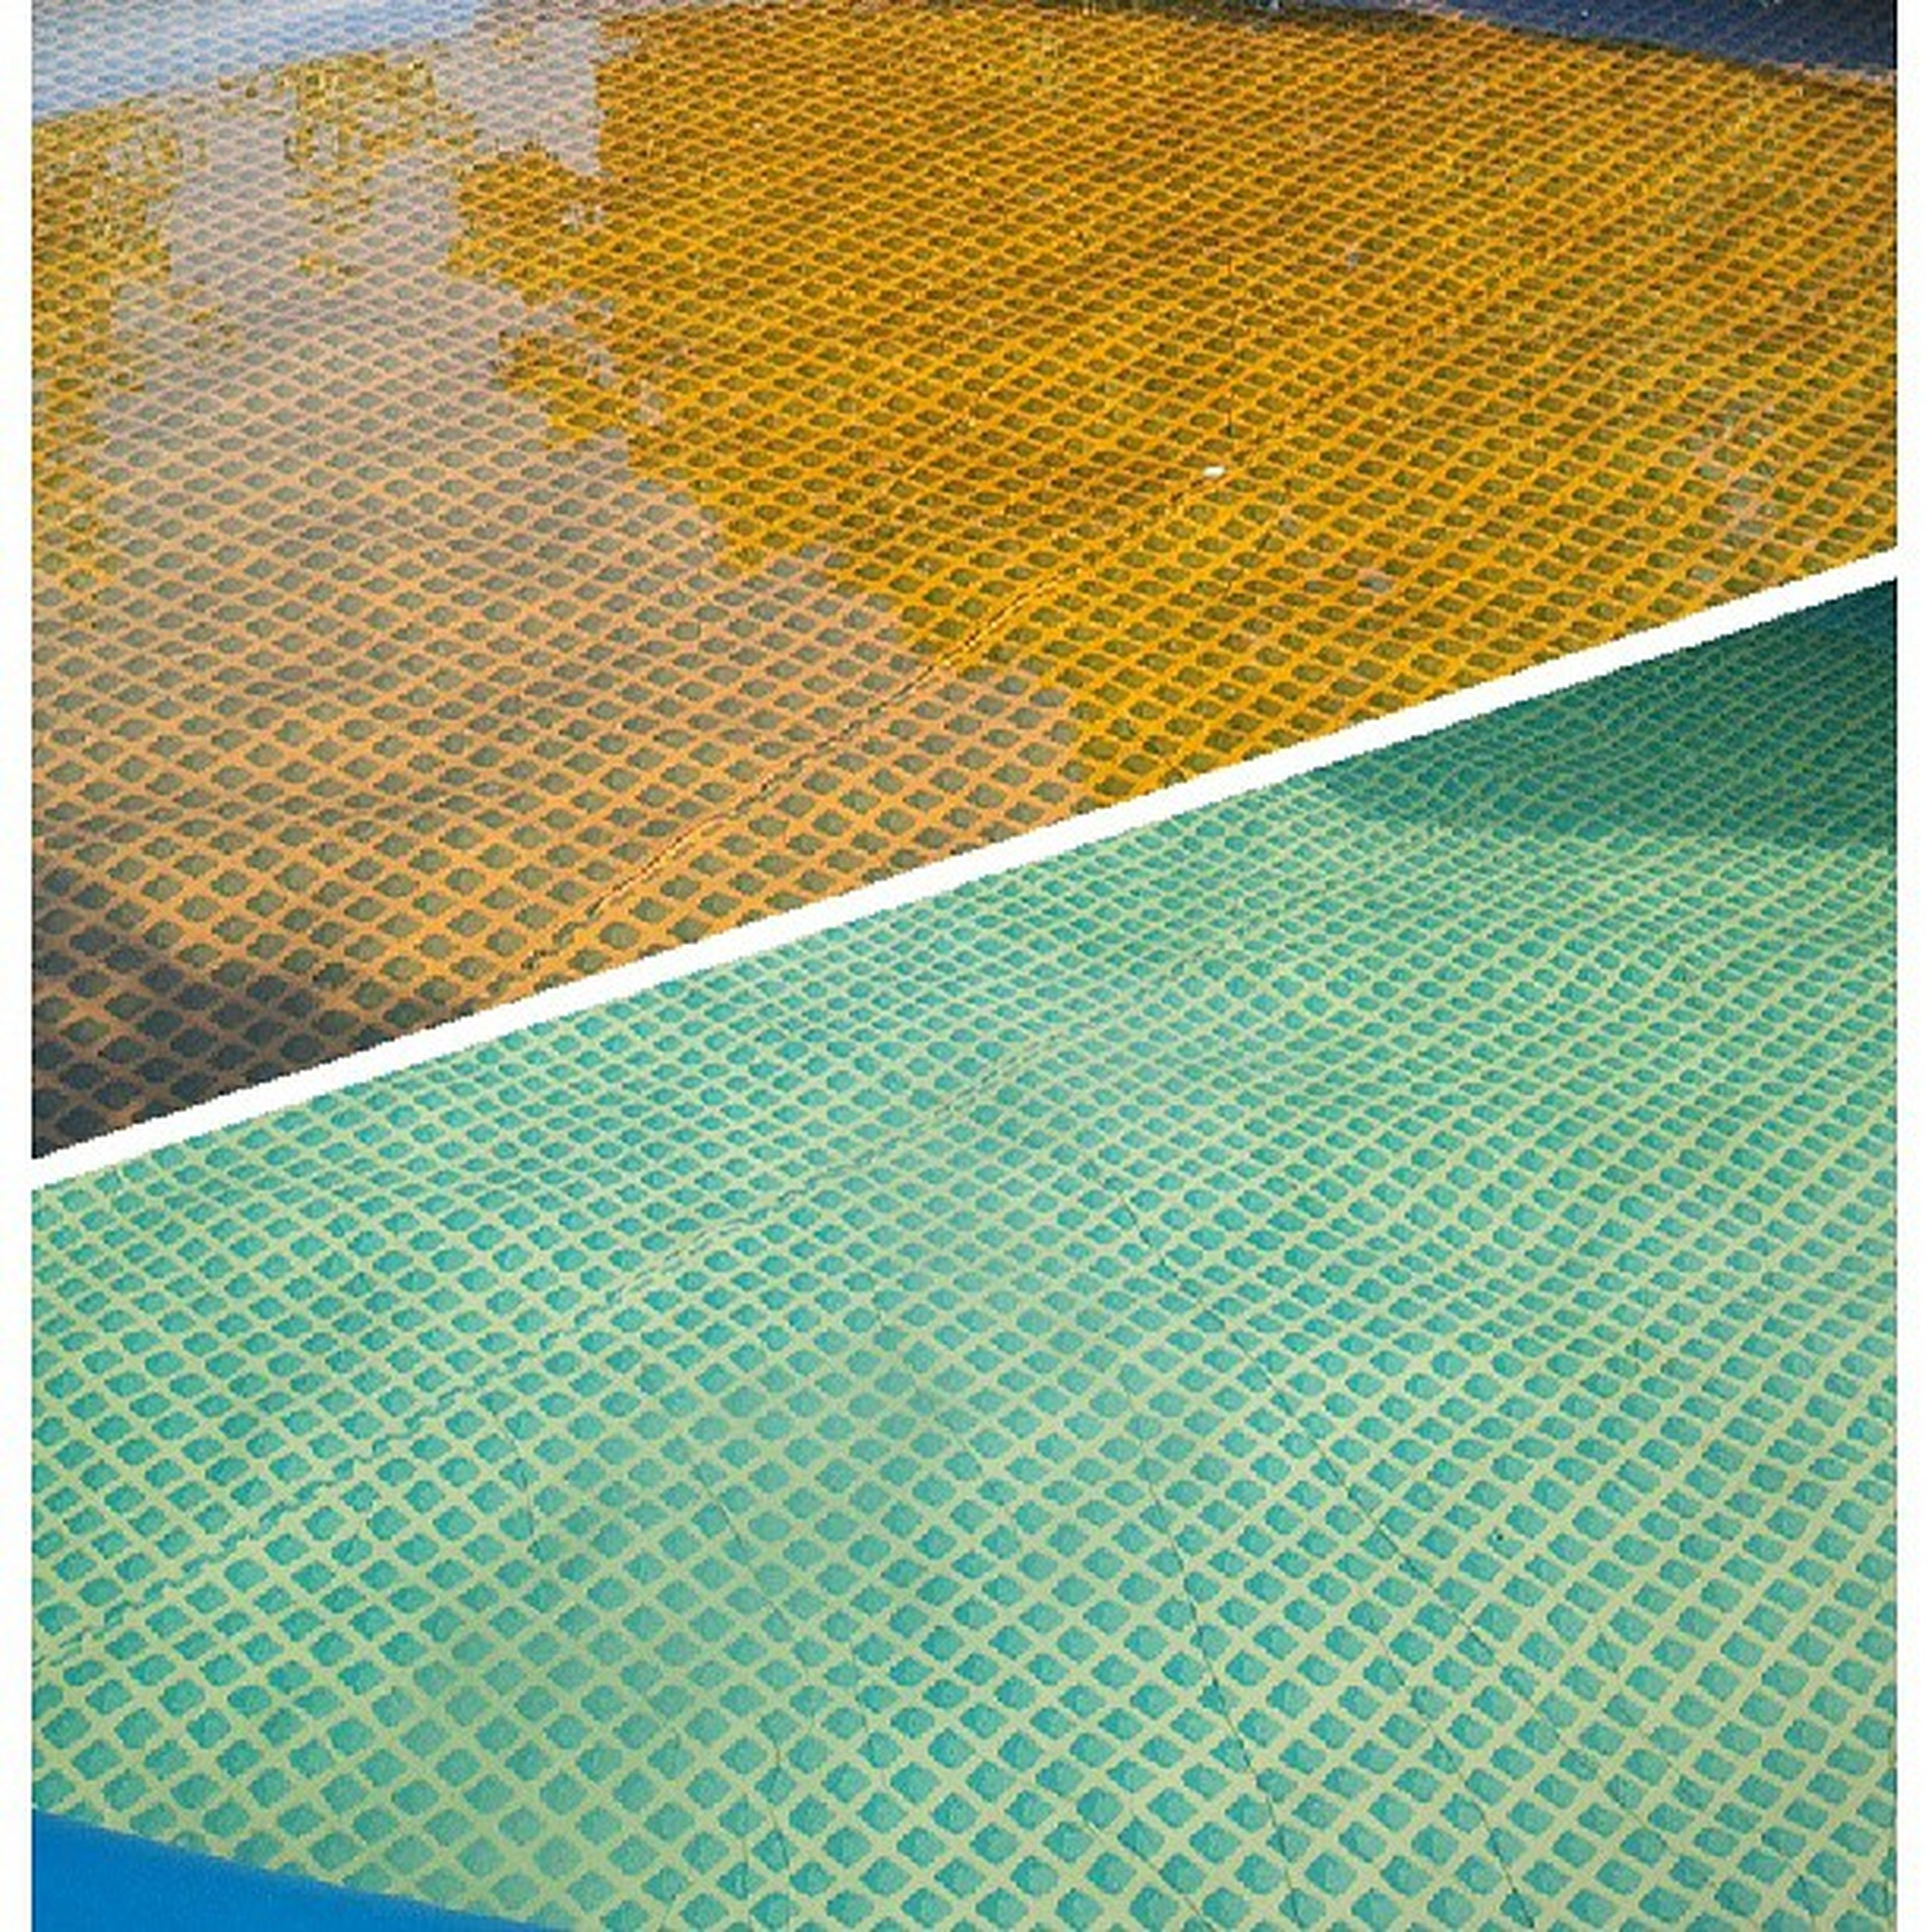 transfer print, pattern, auto post production filter, full frame, backgrounds, textured, indoors, design, close-up, high angle view, no people, multi colored, textile, fabric, striped, yellow, abstract, wall - building feature, day, repetition